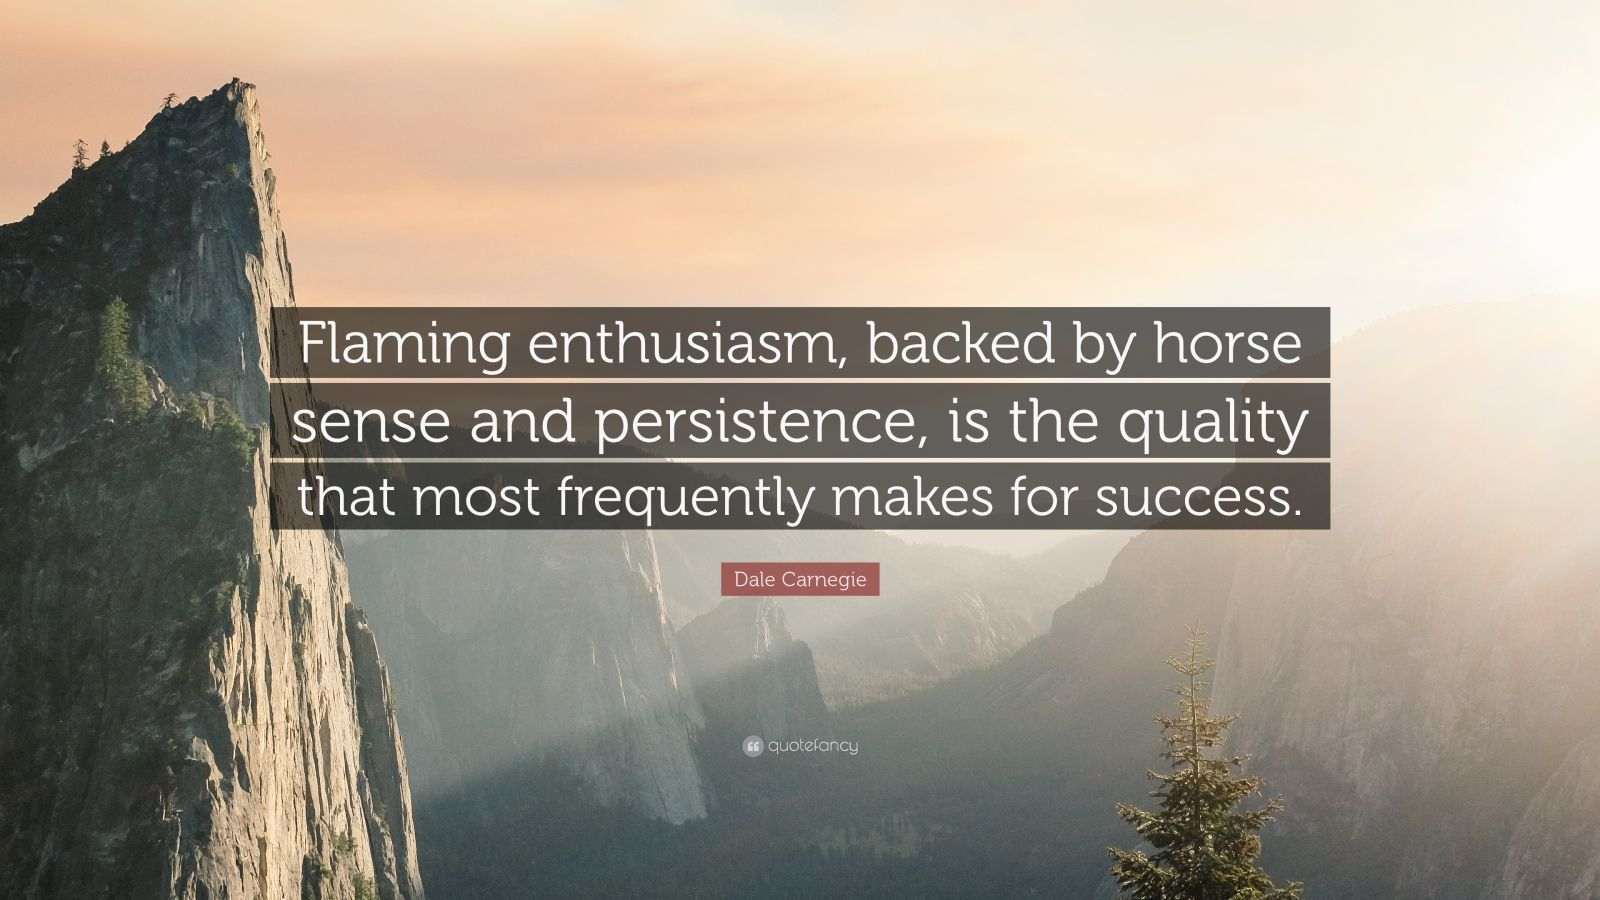 Dale Carnegie Quote: Flaming enthusiasm, backed by horse sense and ...